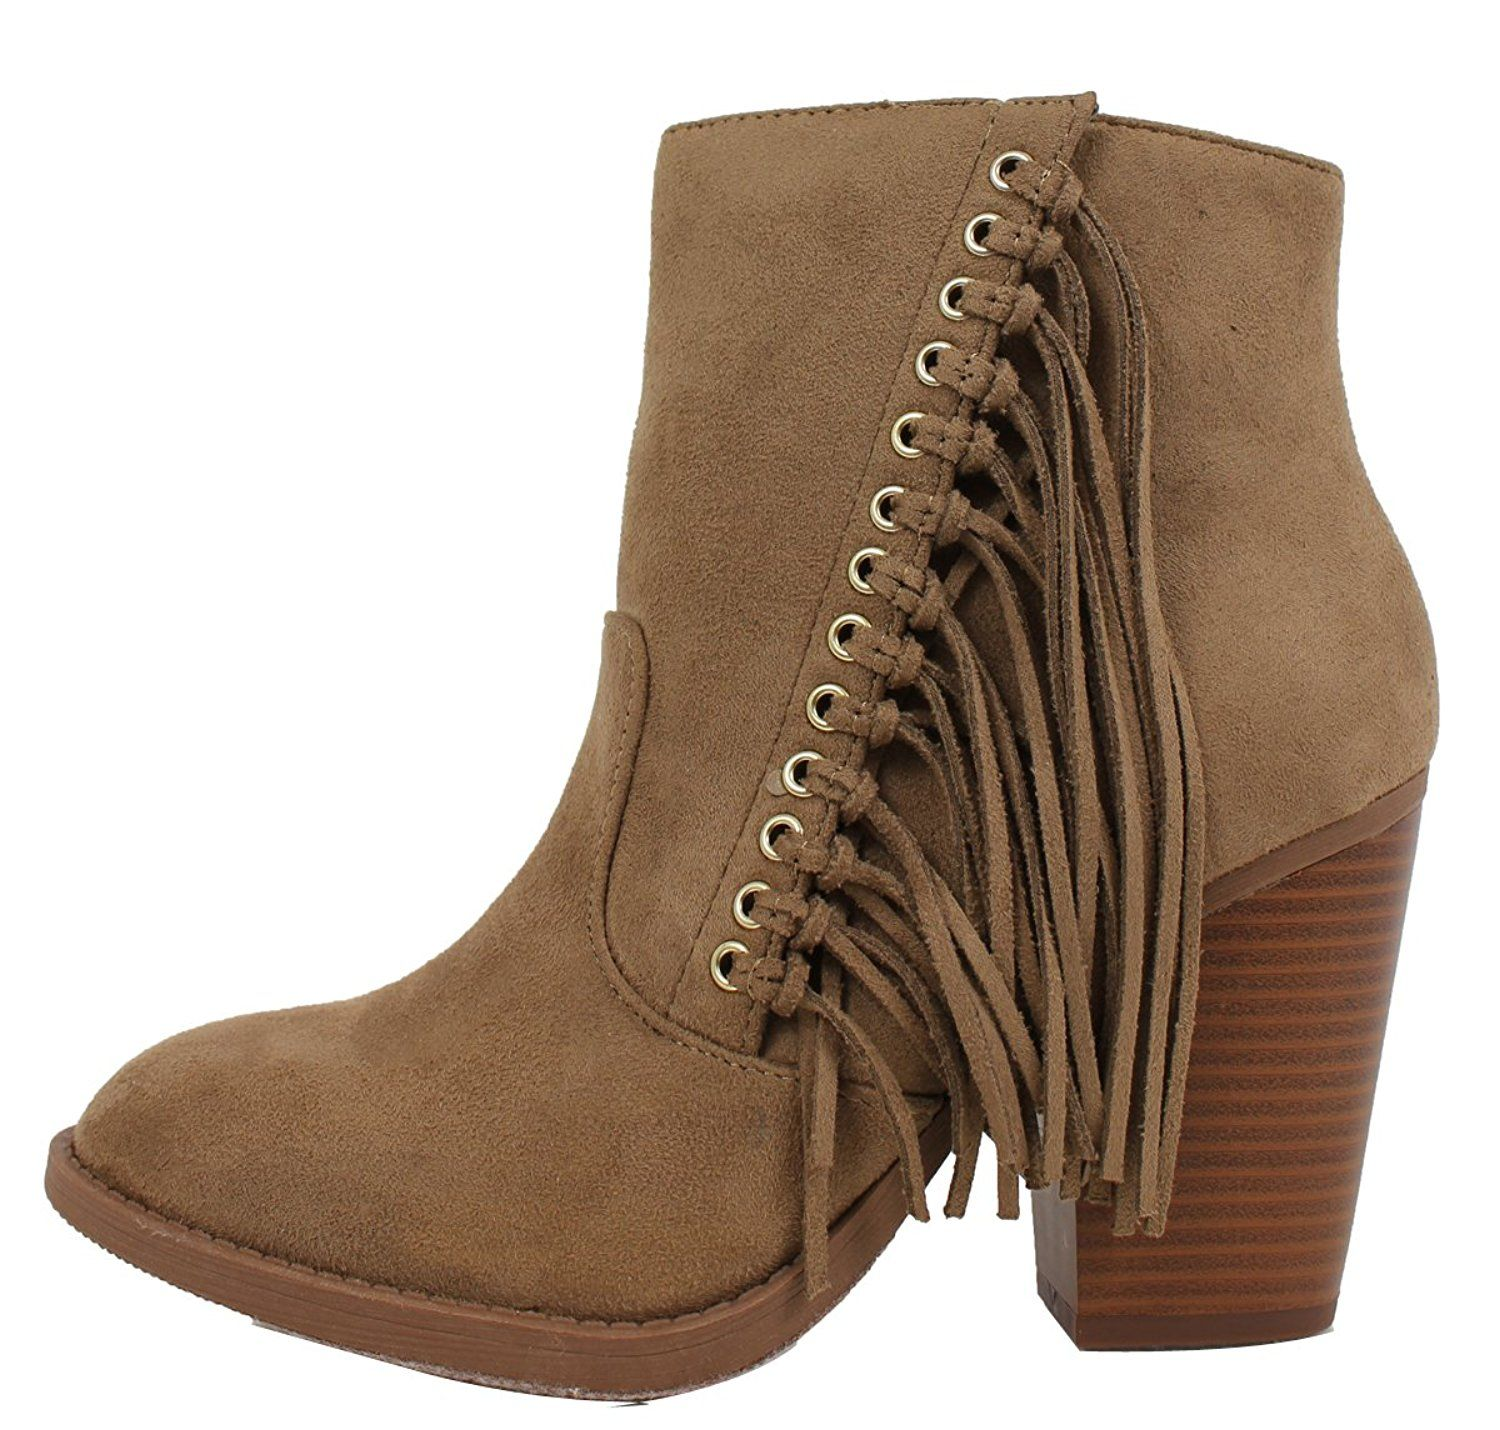 Women's Dimple Faux Suede Fringe Cowboy Stacked Heel Ankle Boot